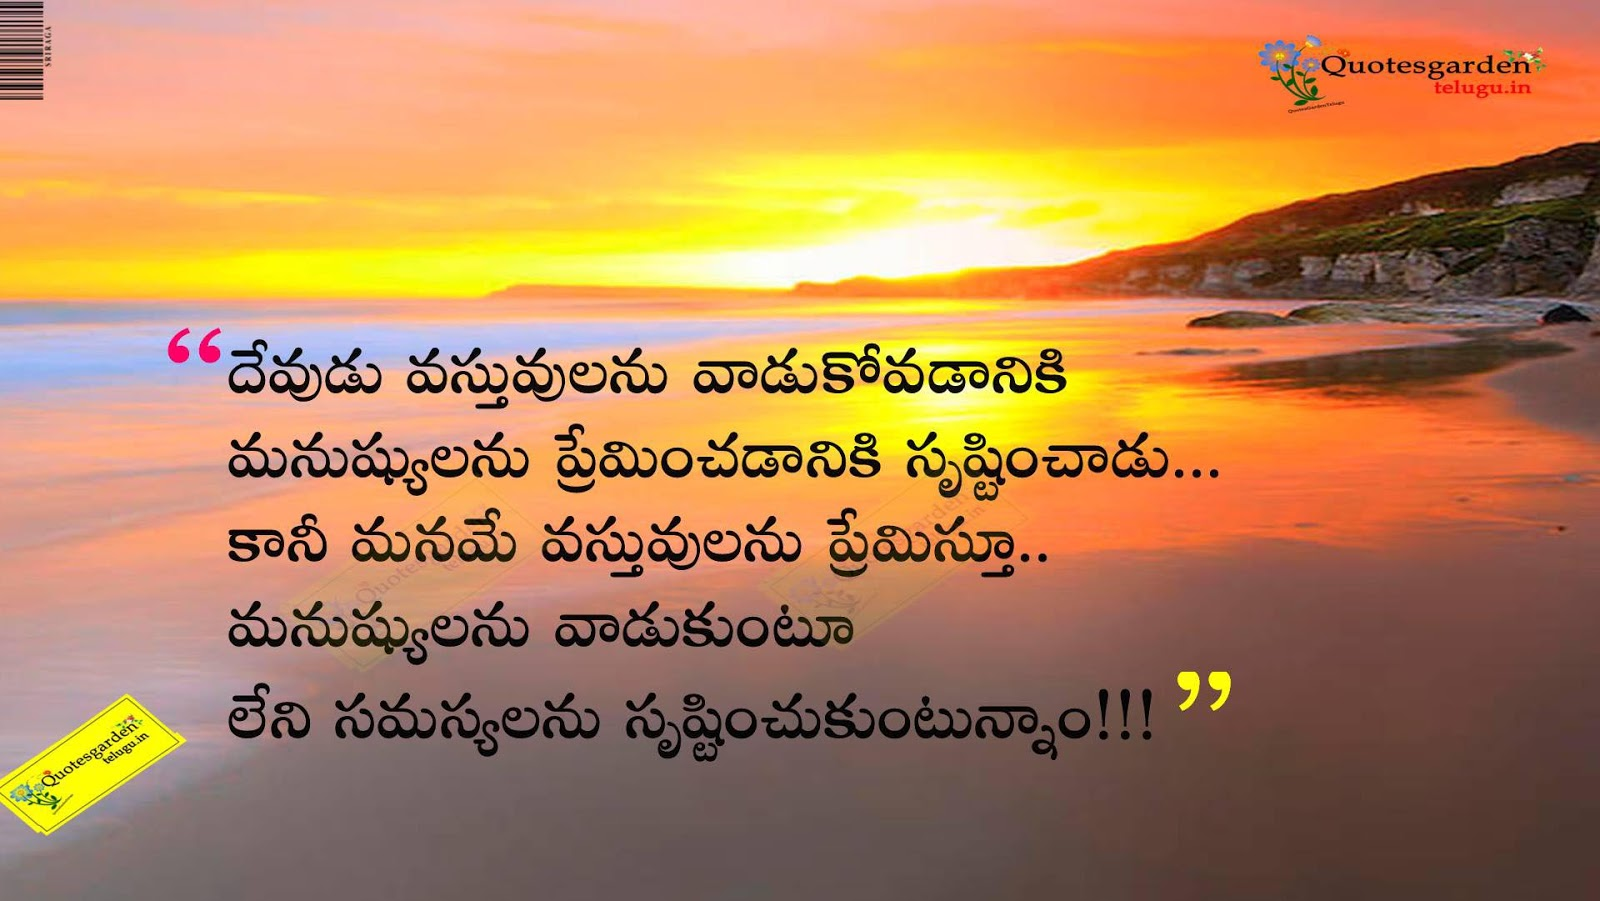 Best Telugu Heart Touching Inspirational Life Quotes Quotes Garden